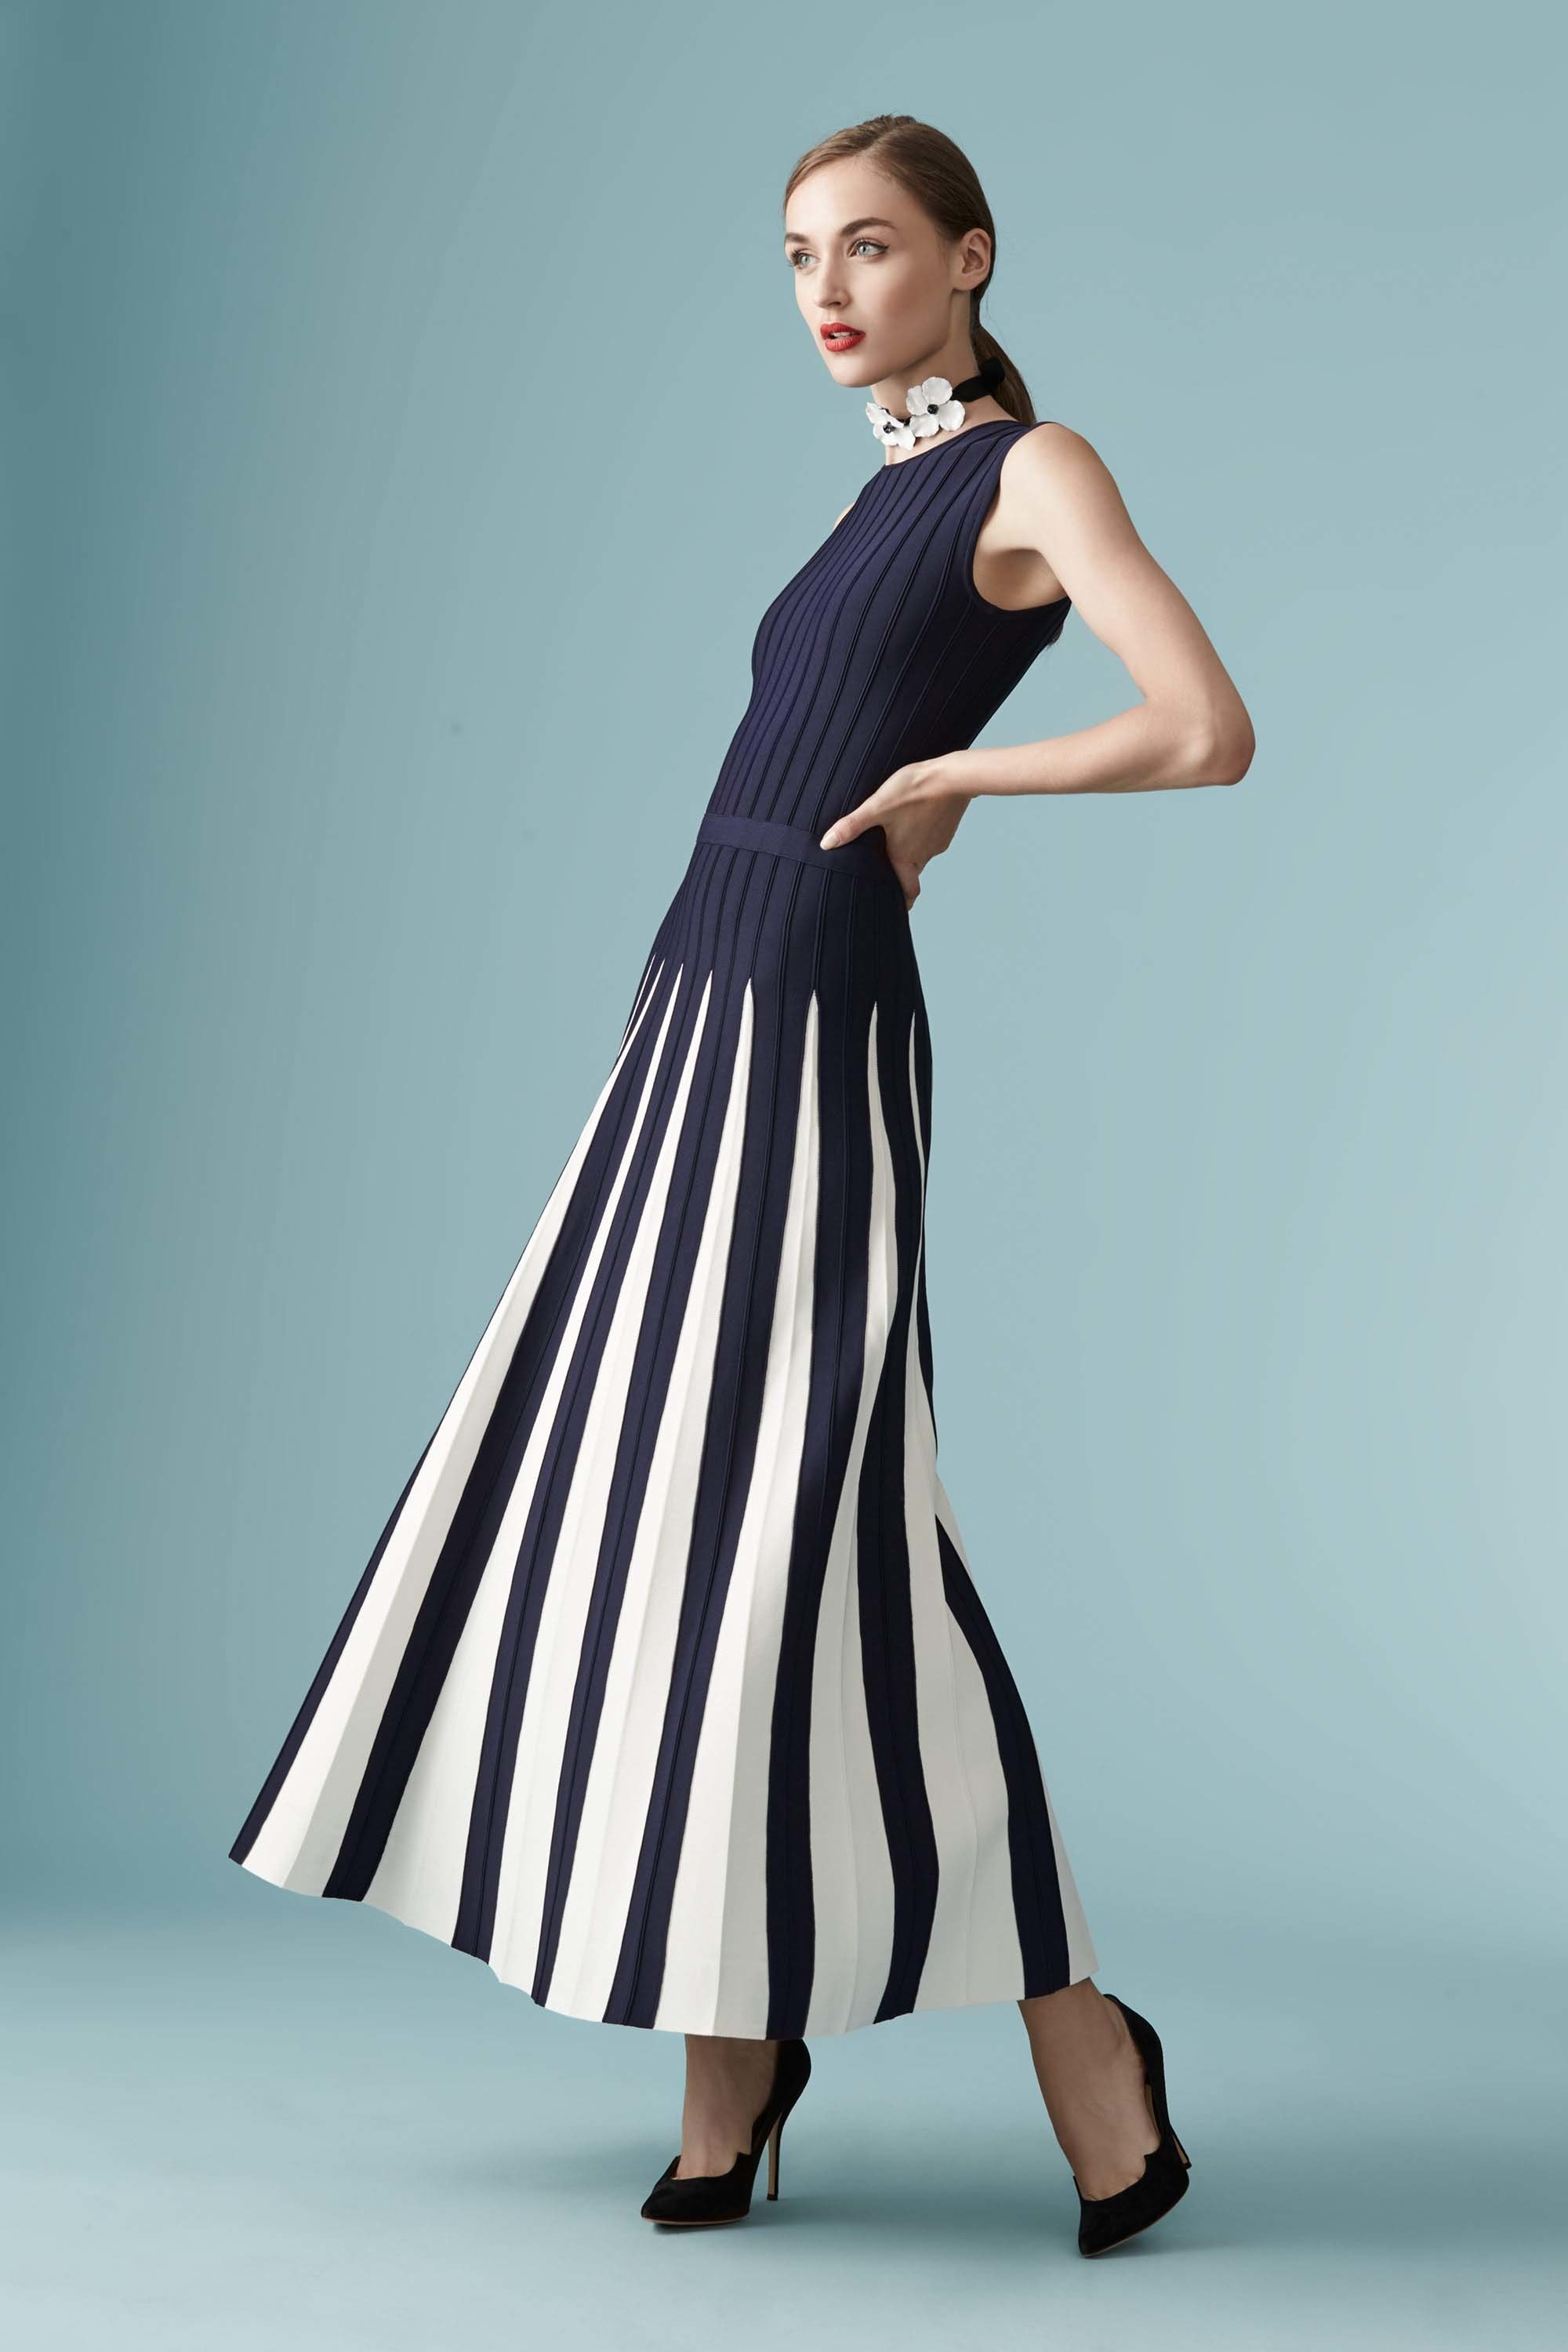 @pfairytale Carolina Herrera Resort 2017